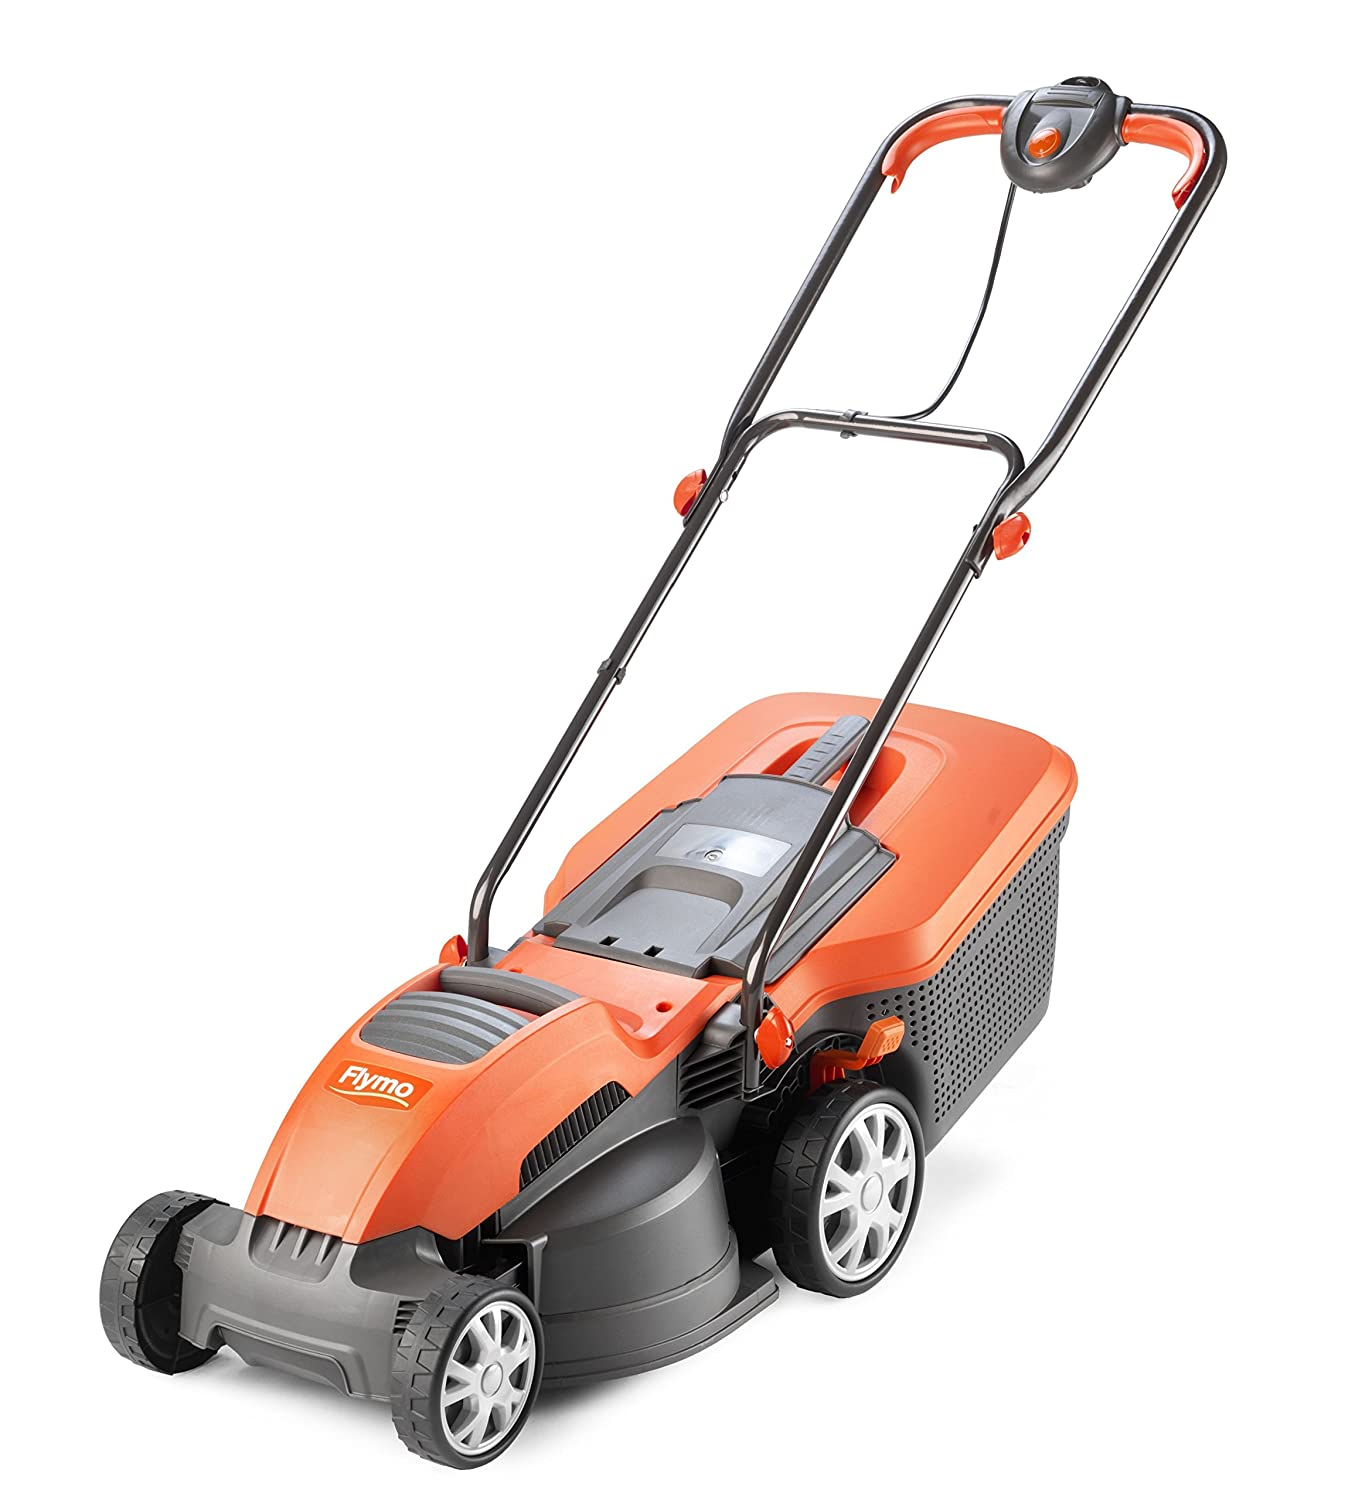 Flymo Speedi-Mo 360C Electric Wheeled Lawn Mower, 1500 W, Cutting Width 36 cm Husqvarna 9676634-01